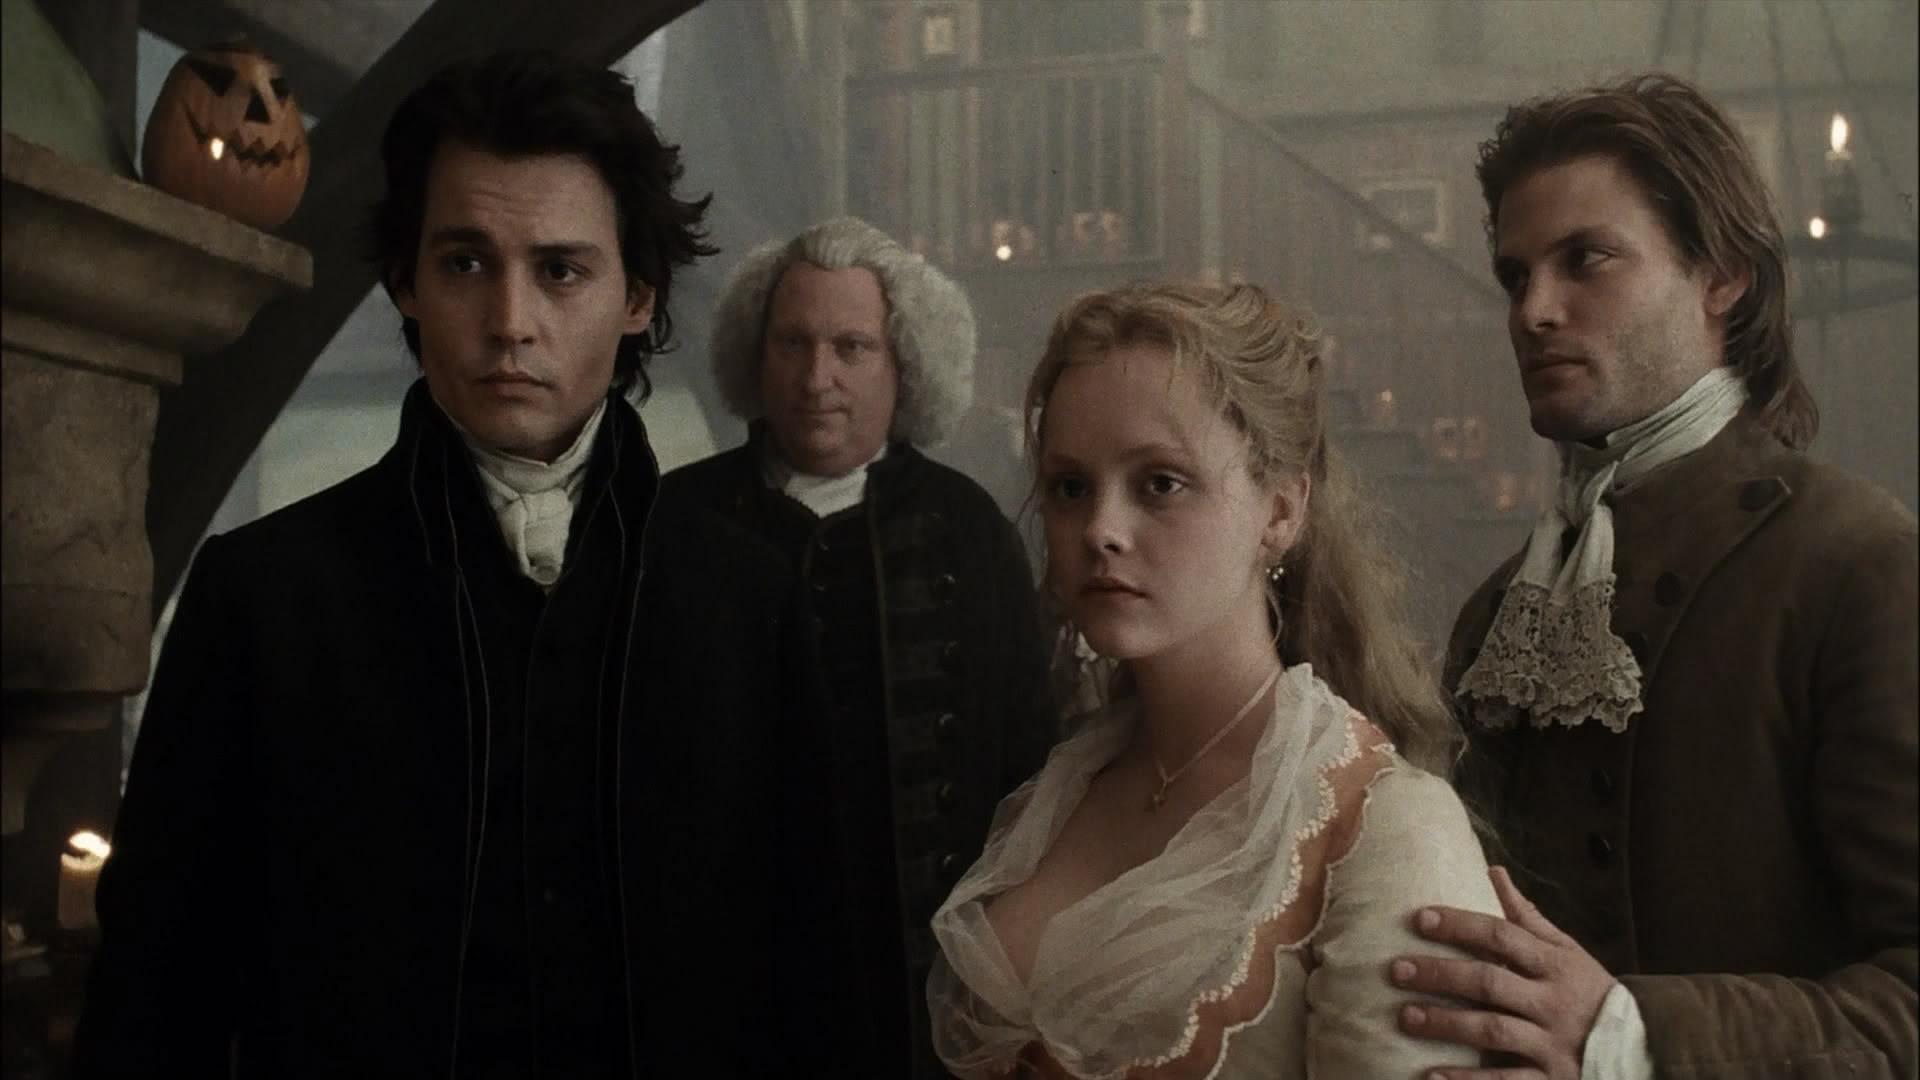 Sleepy Hollow  directed by Tim Burton in 1999.